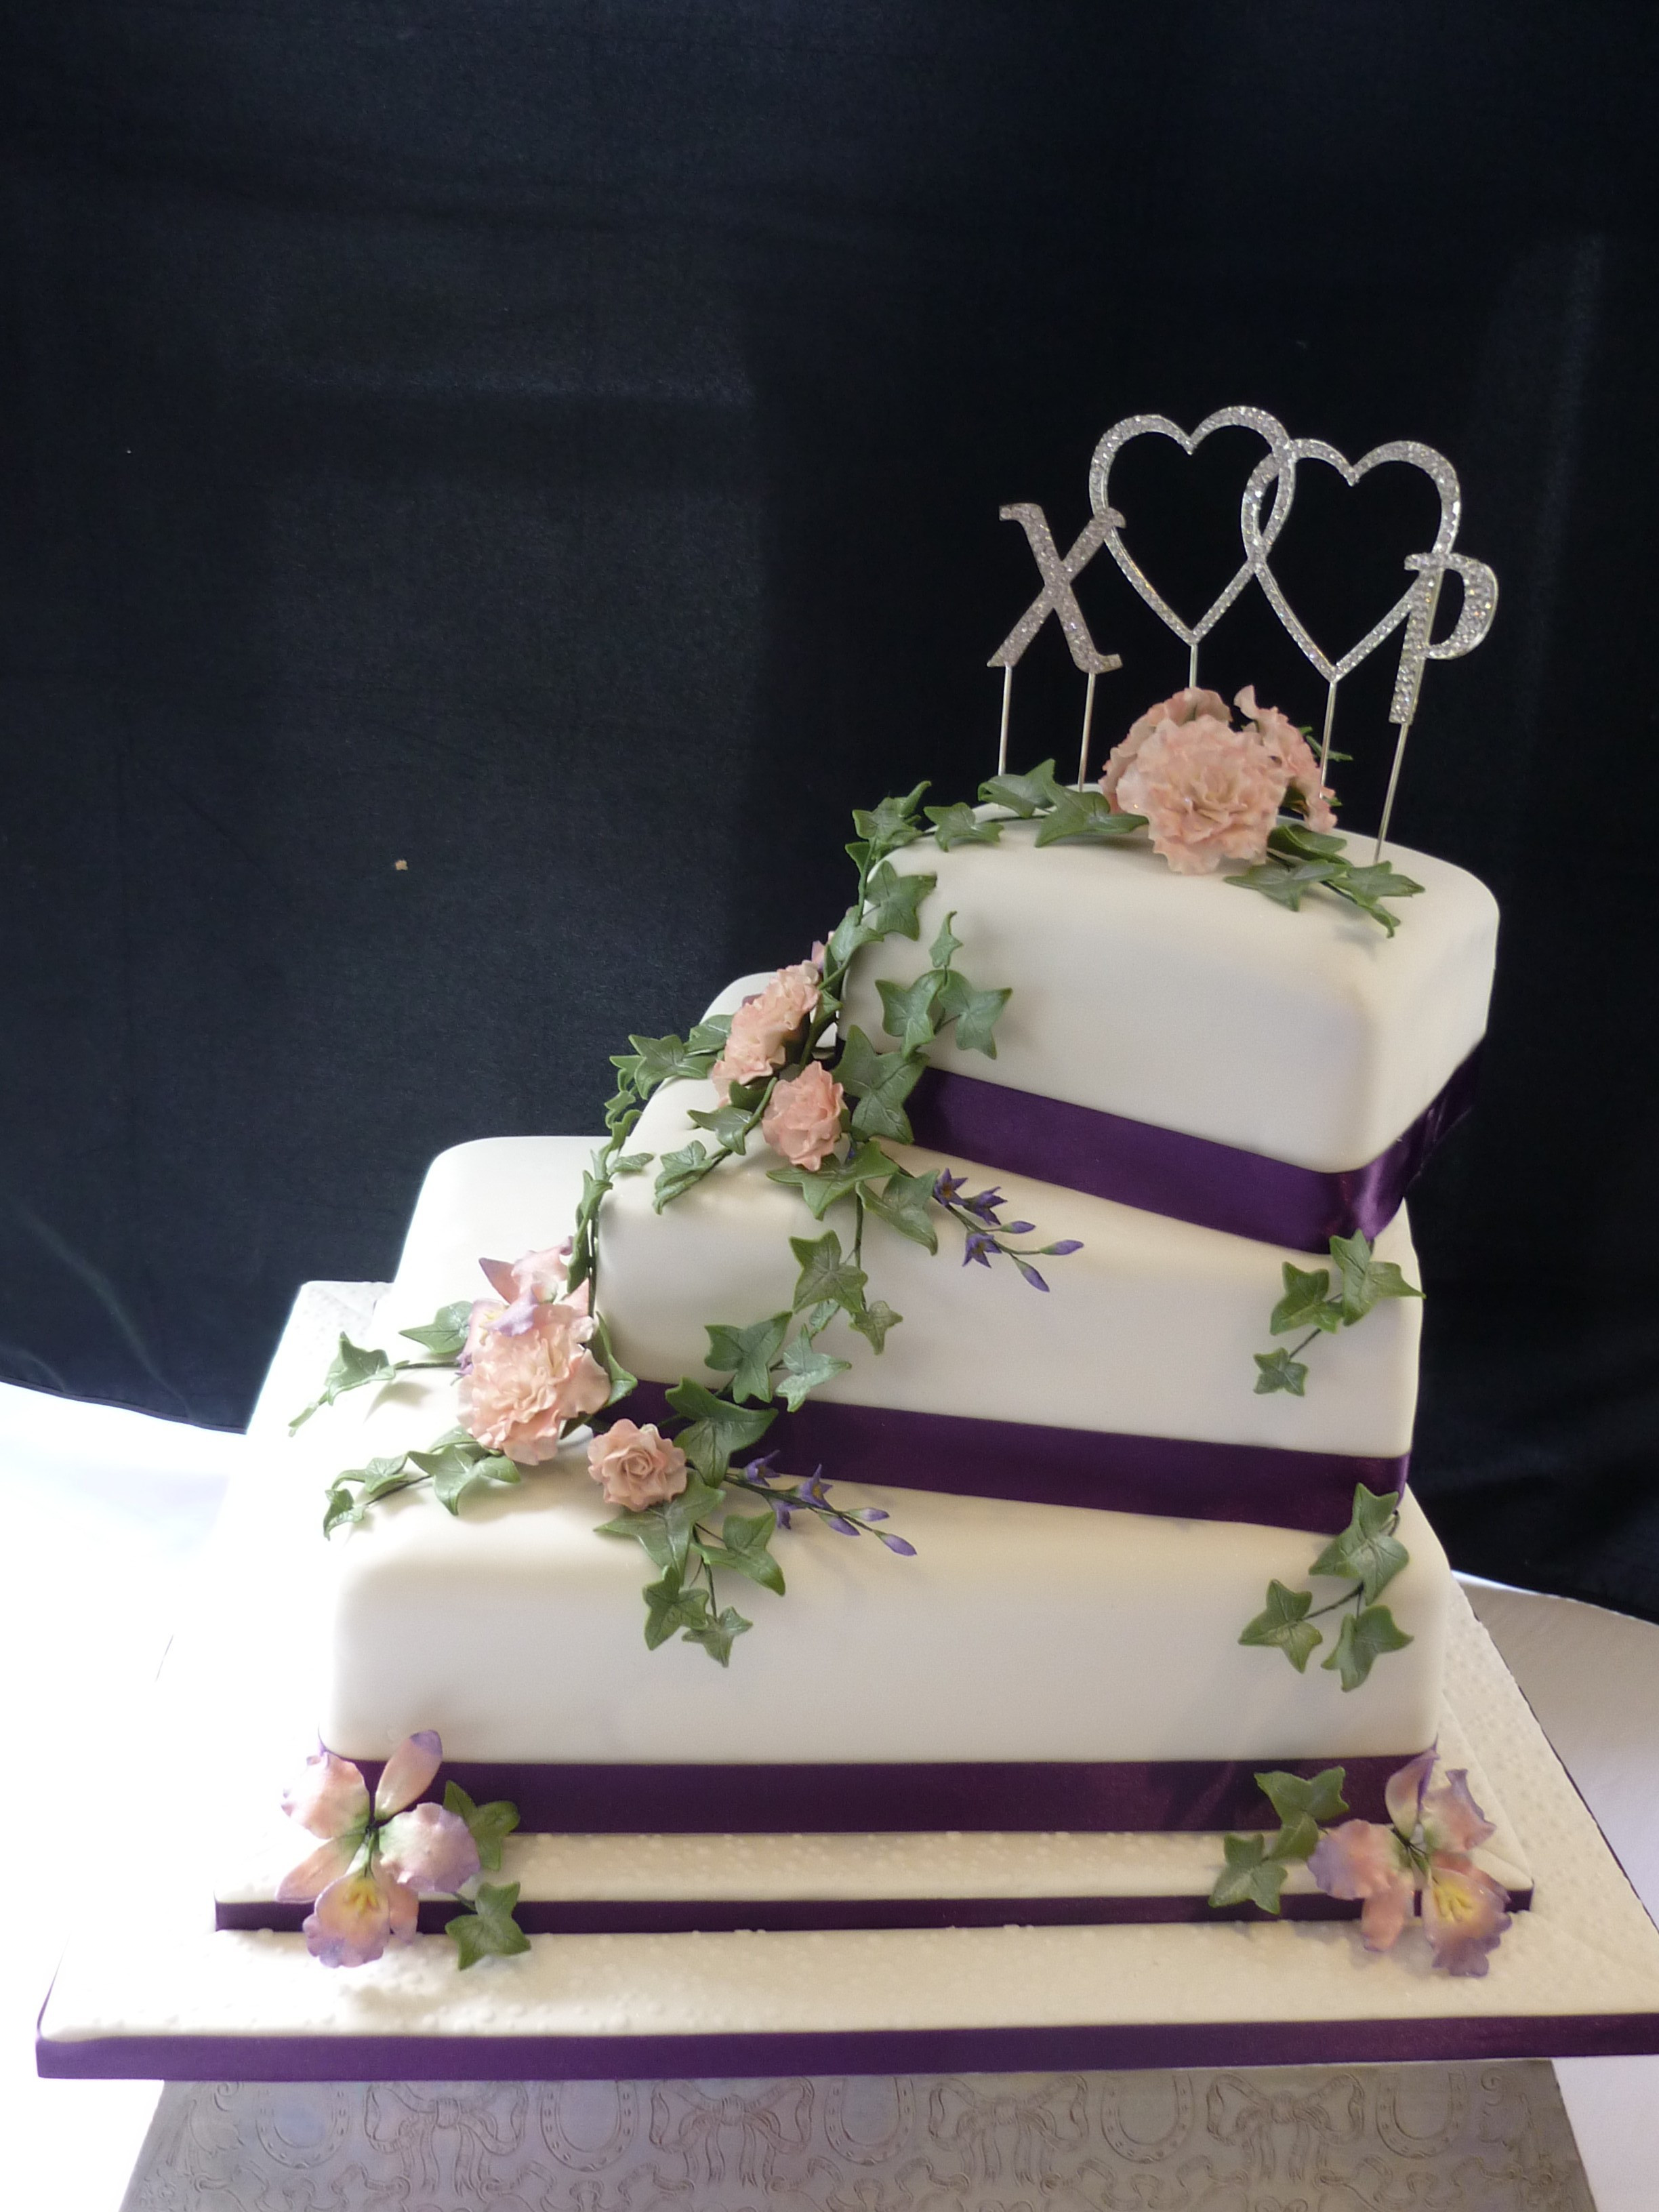 3 Tiered Square Wedding Cakes top 20 3 Tier Square orchid and Rose Wedding Cake